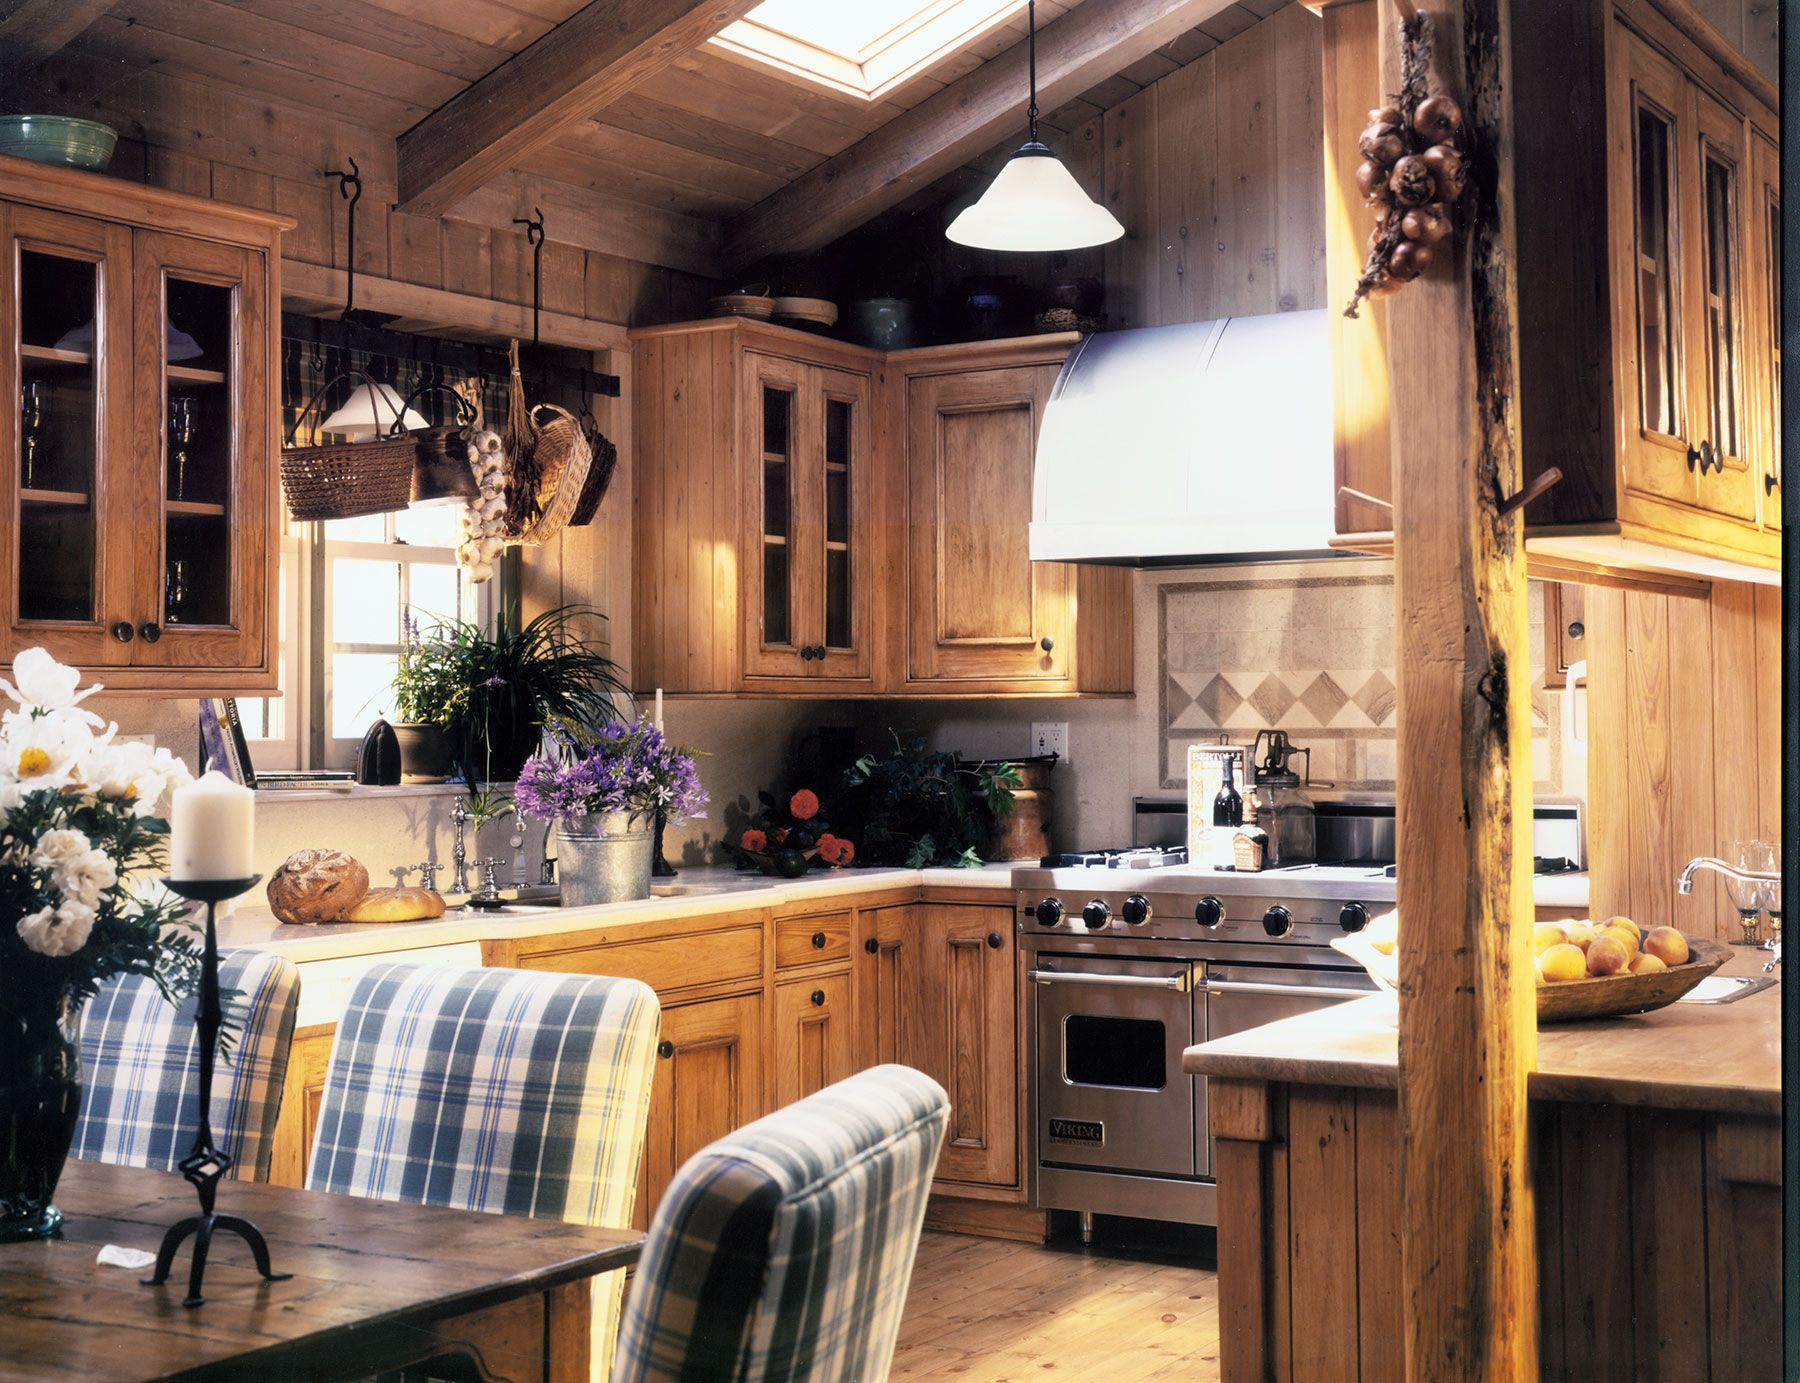 old farmhouse style kitchen maraya interior design with natural pine cabinets and posts no on farmhouse kitchen small id=99723